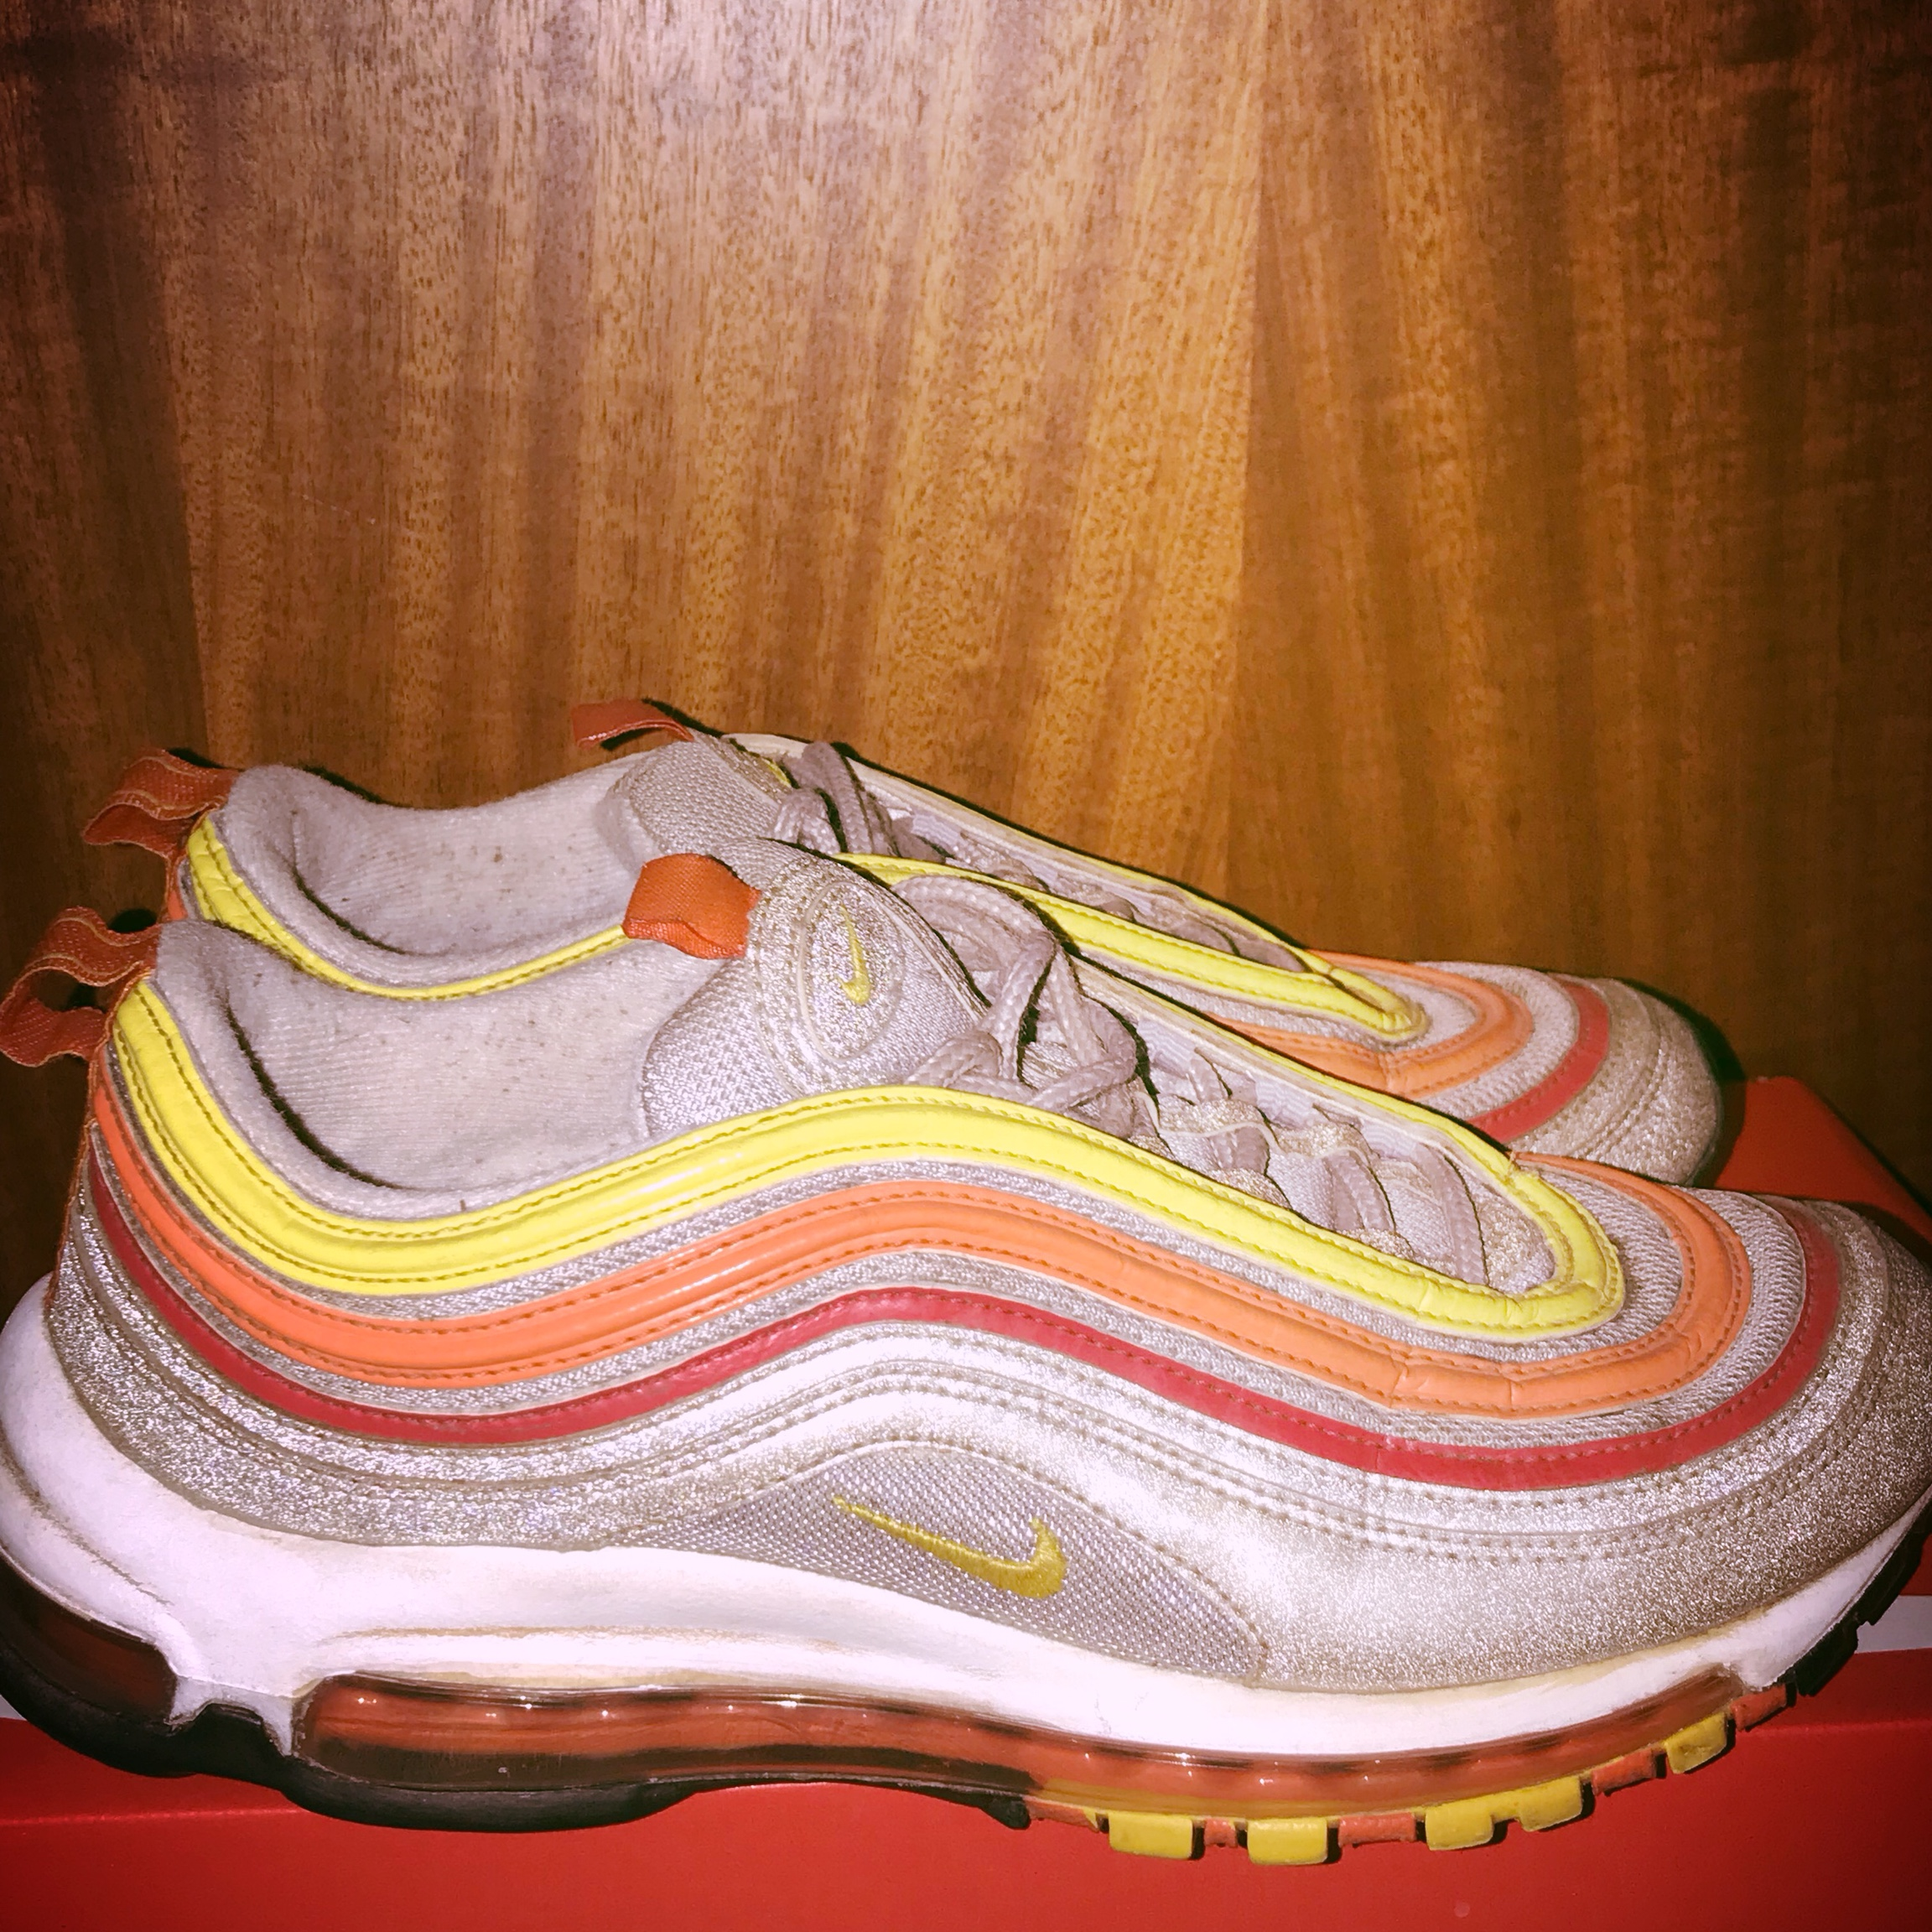 nike air max 97 yellow orange red